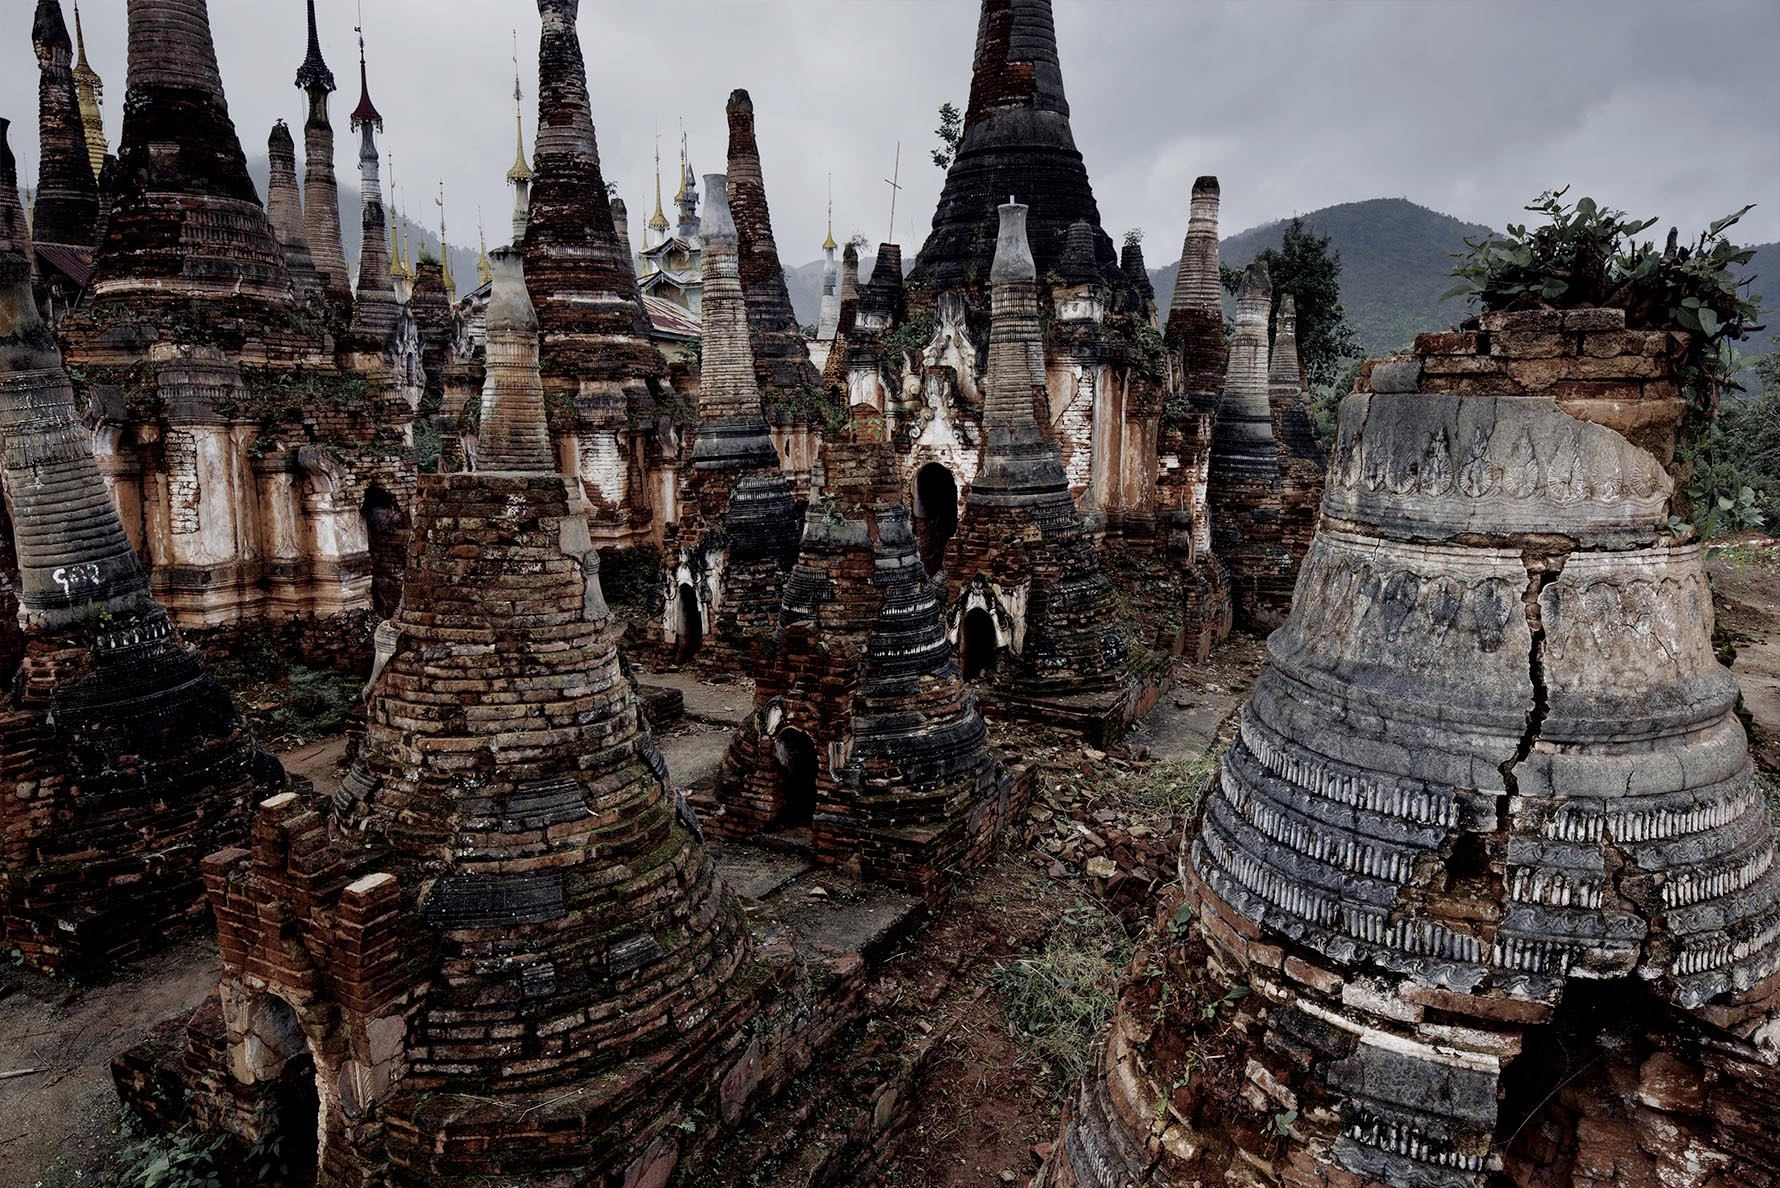 Inle Lake, Inthein or Indein, Paya Shwe Inn Thein stupas